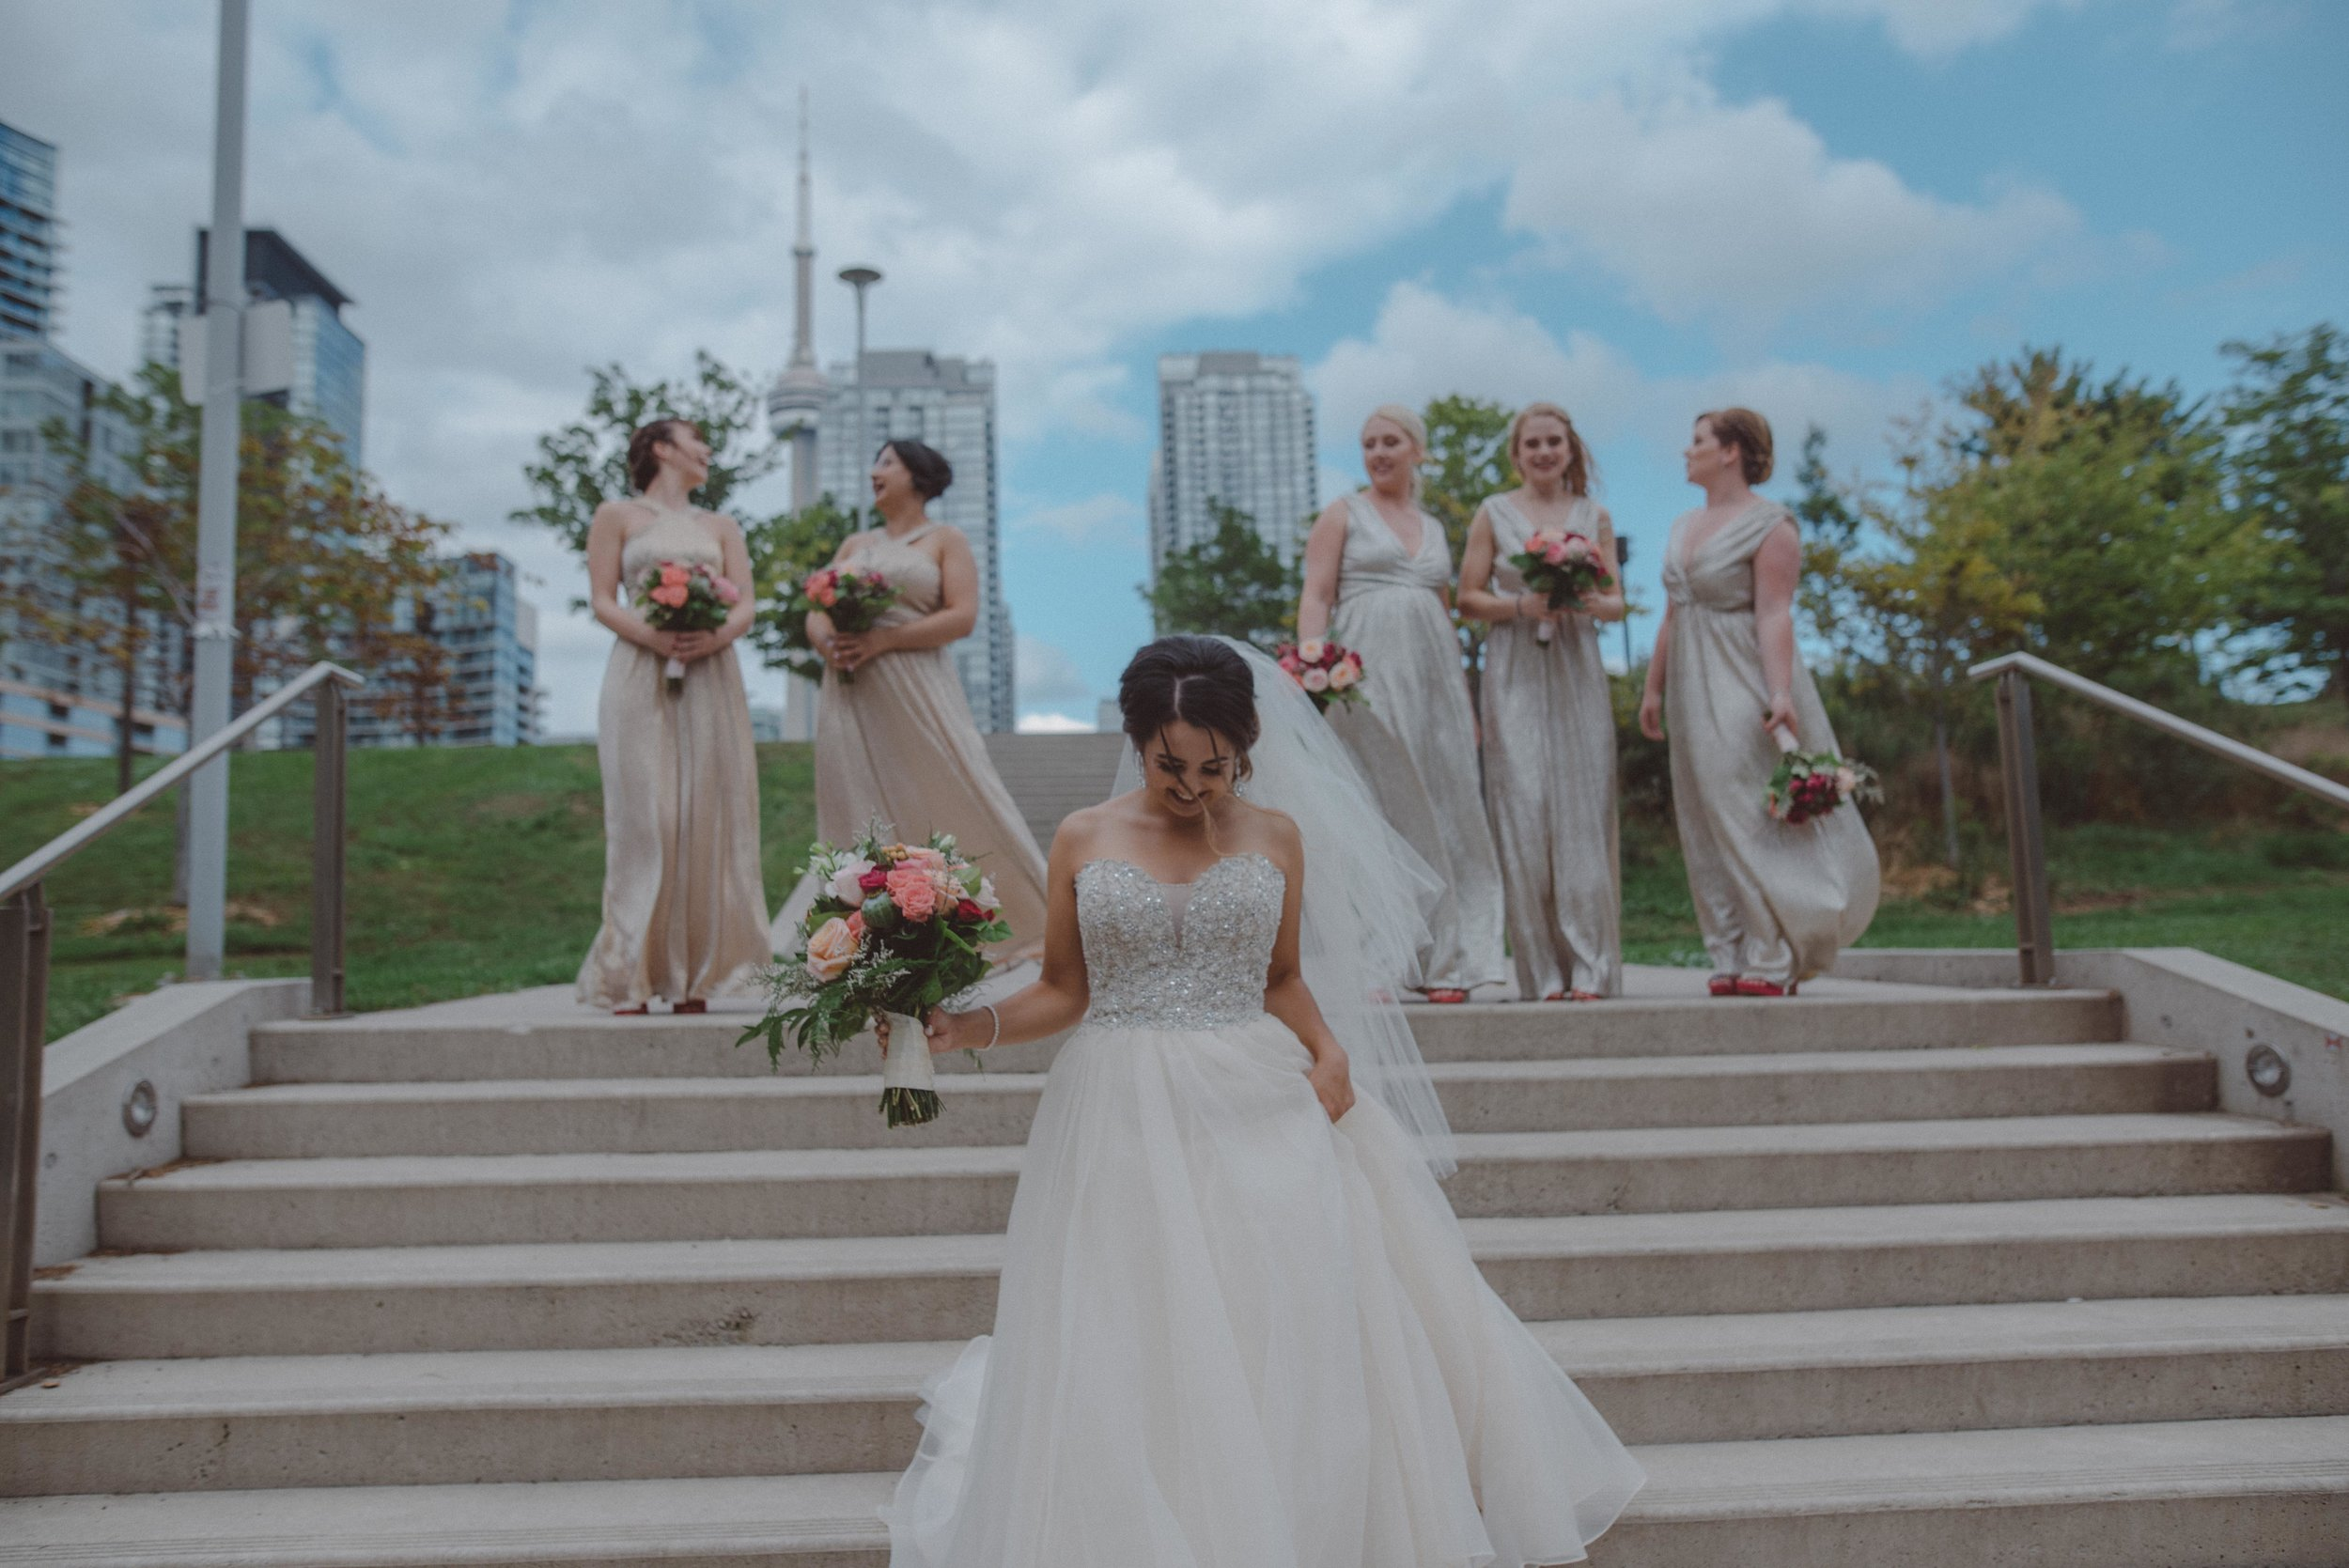 mariage_photographe_toronto_gatineau_ottawa_photographer_wedding-50.jpg